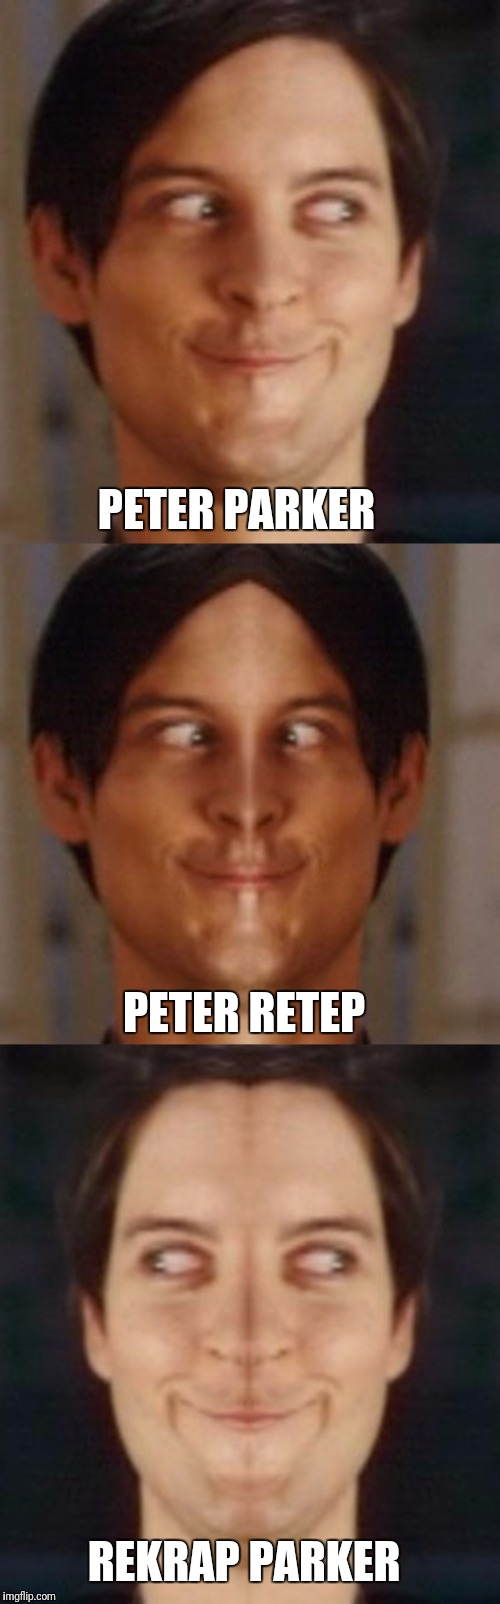 Secret identities | PETER PARKER PETER RETEP REKRAP PARKER | image tagged in spiderman peter parker,memes,mirrors,spiderman mirror | made w/ Imgflip meme maker